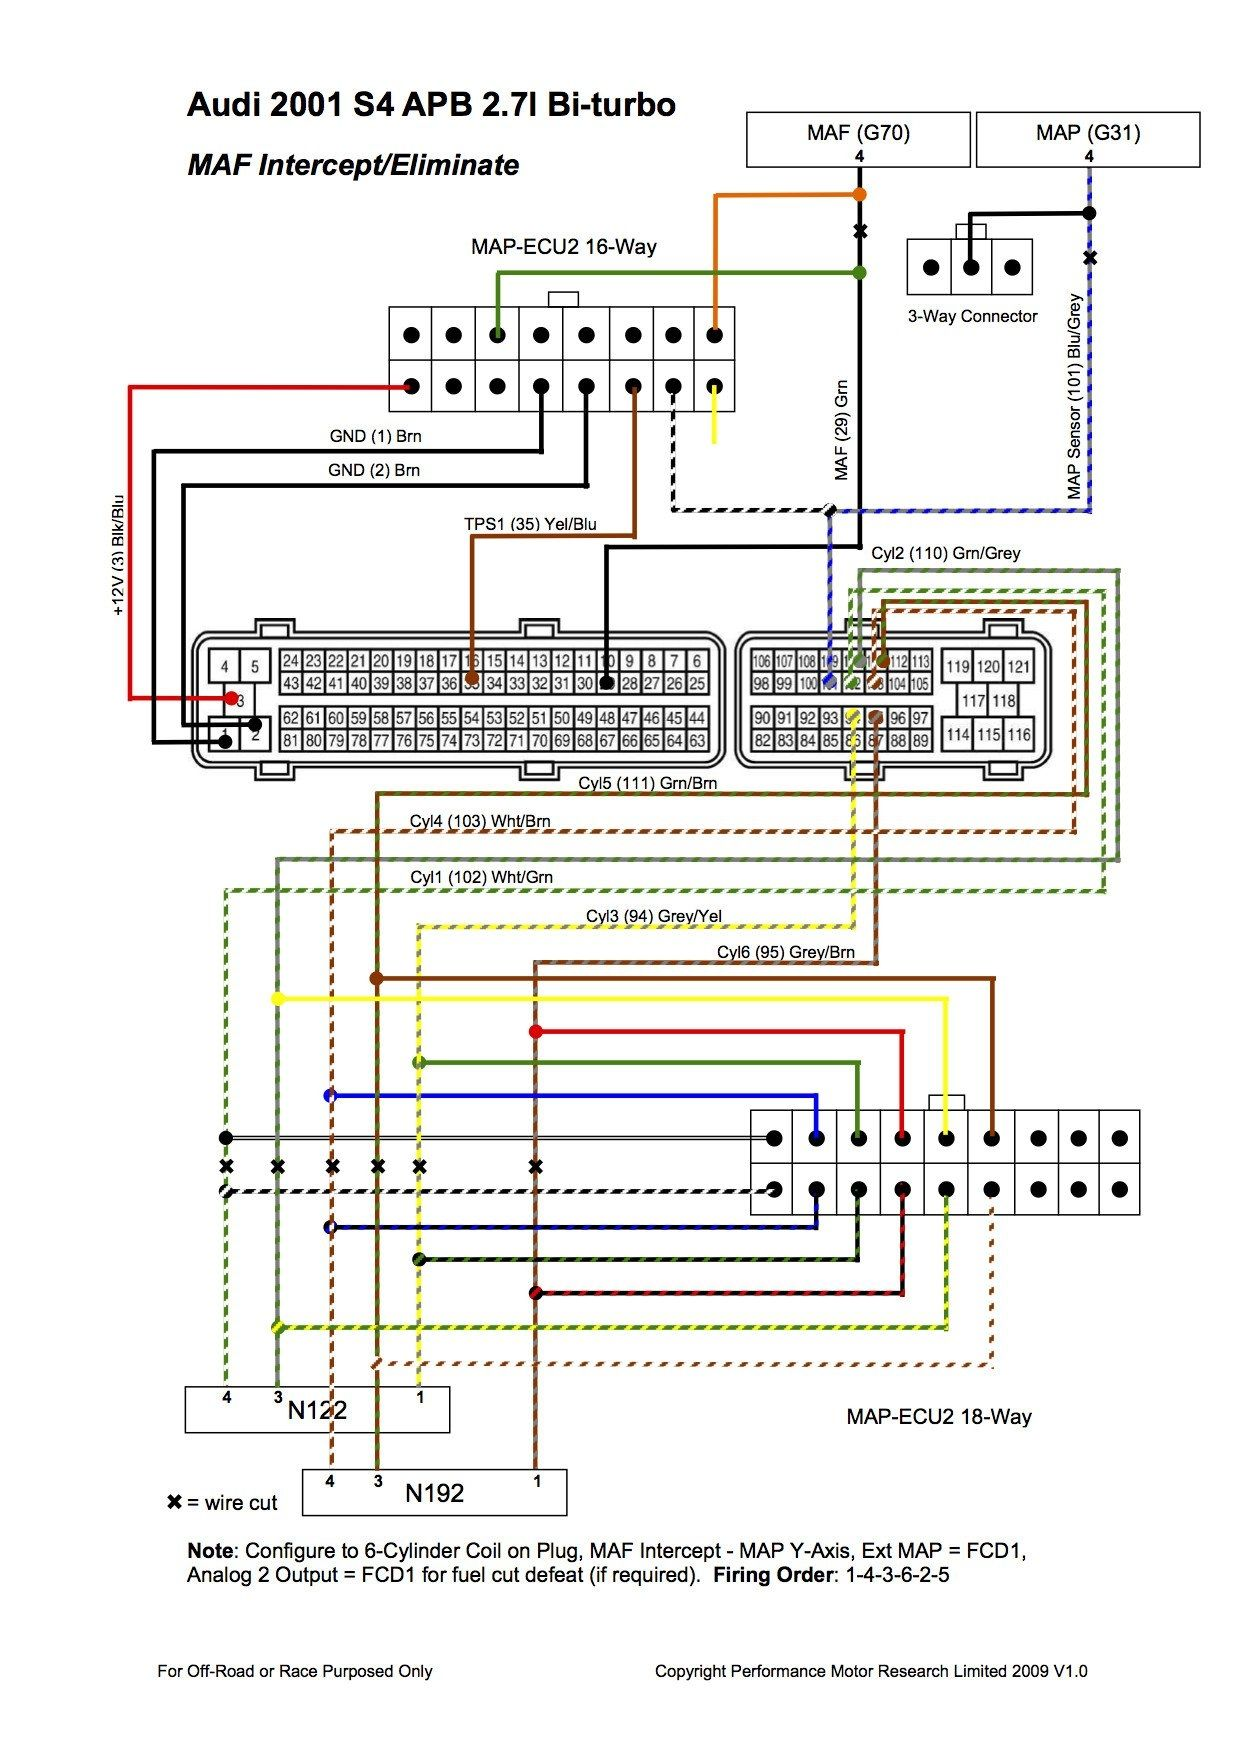 1996 corolla parts diagram wiring diagram services u2022 in 2009 wiring diagrams 54 of 103 [ 1239 x 1754 Pixel ]